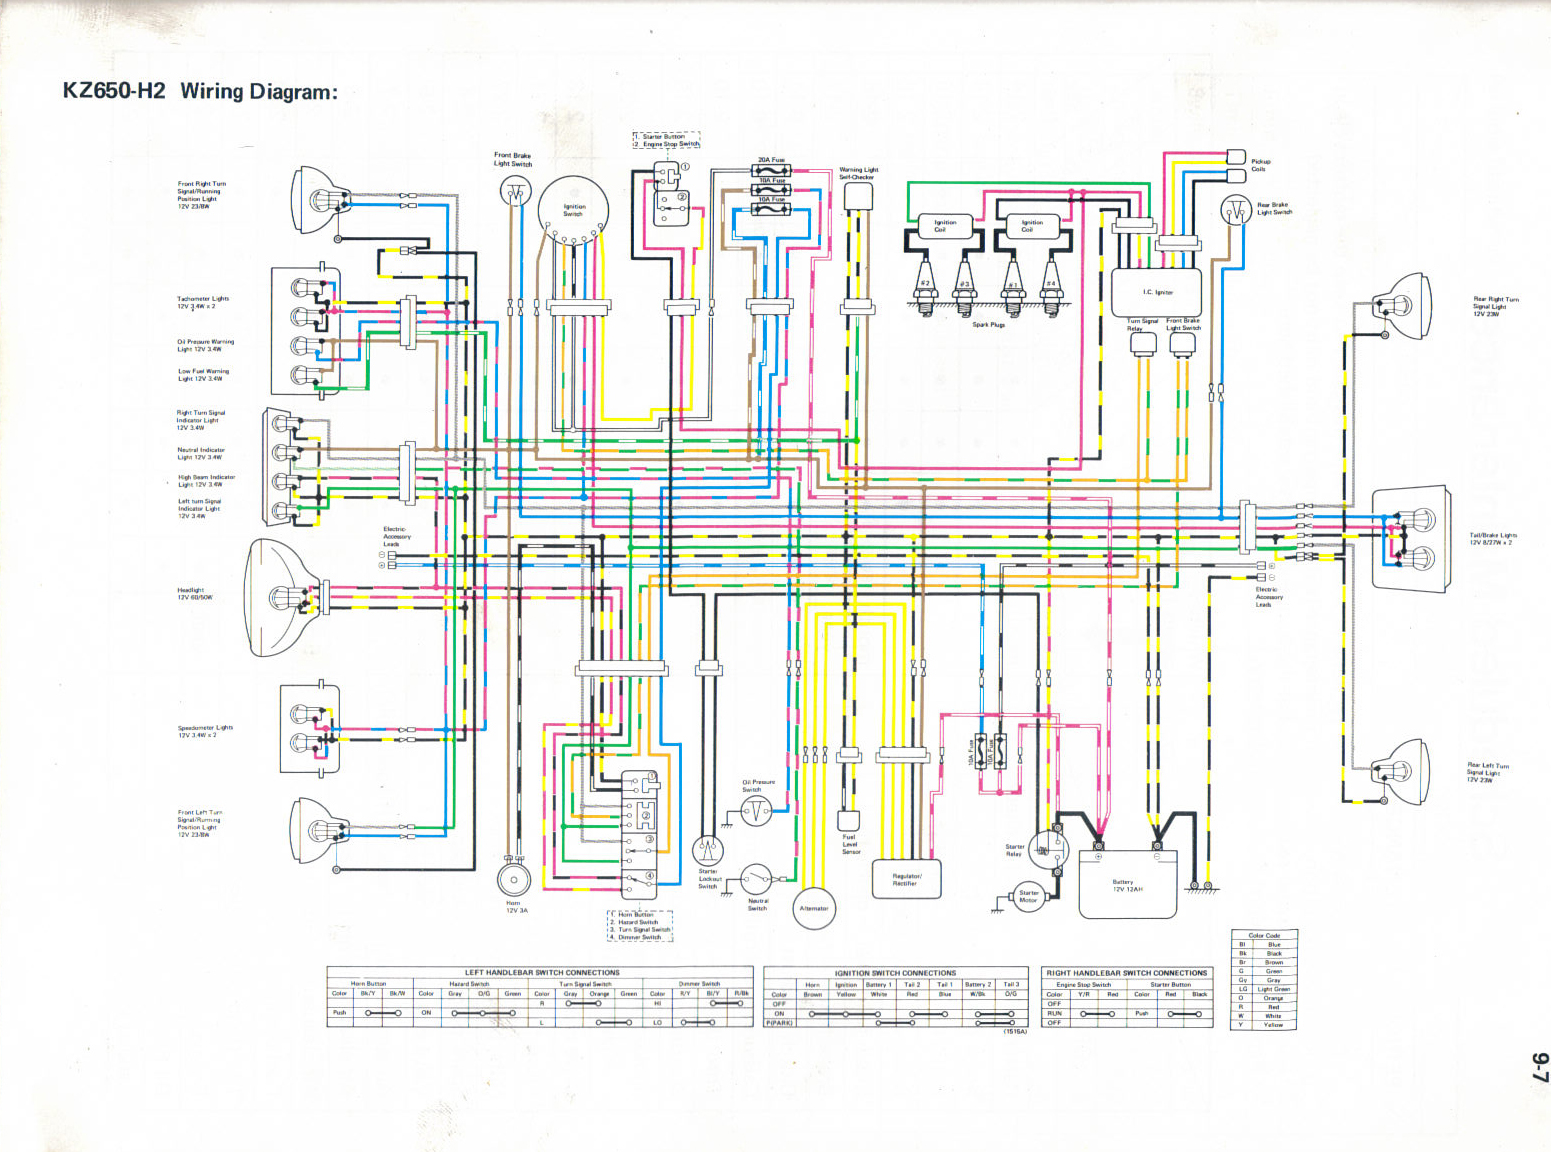 hight resolution of kz650 info wiring diagrams 1978 kawasaki kz650 wiring diagram